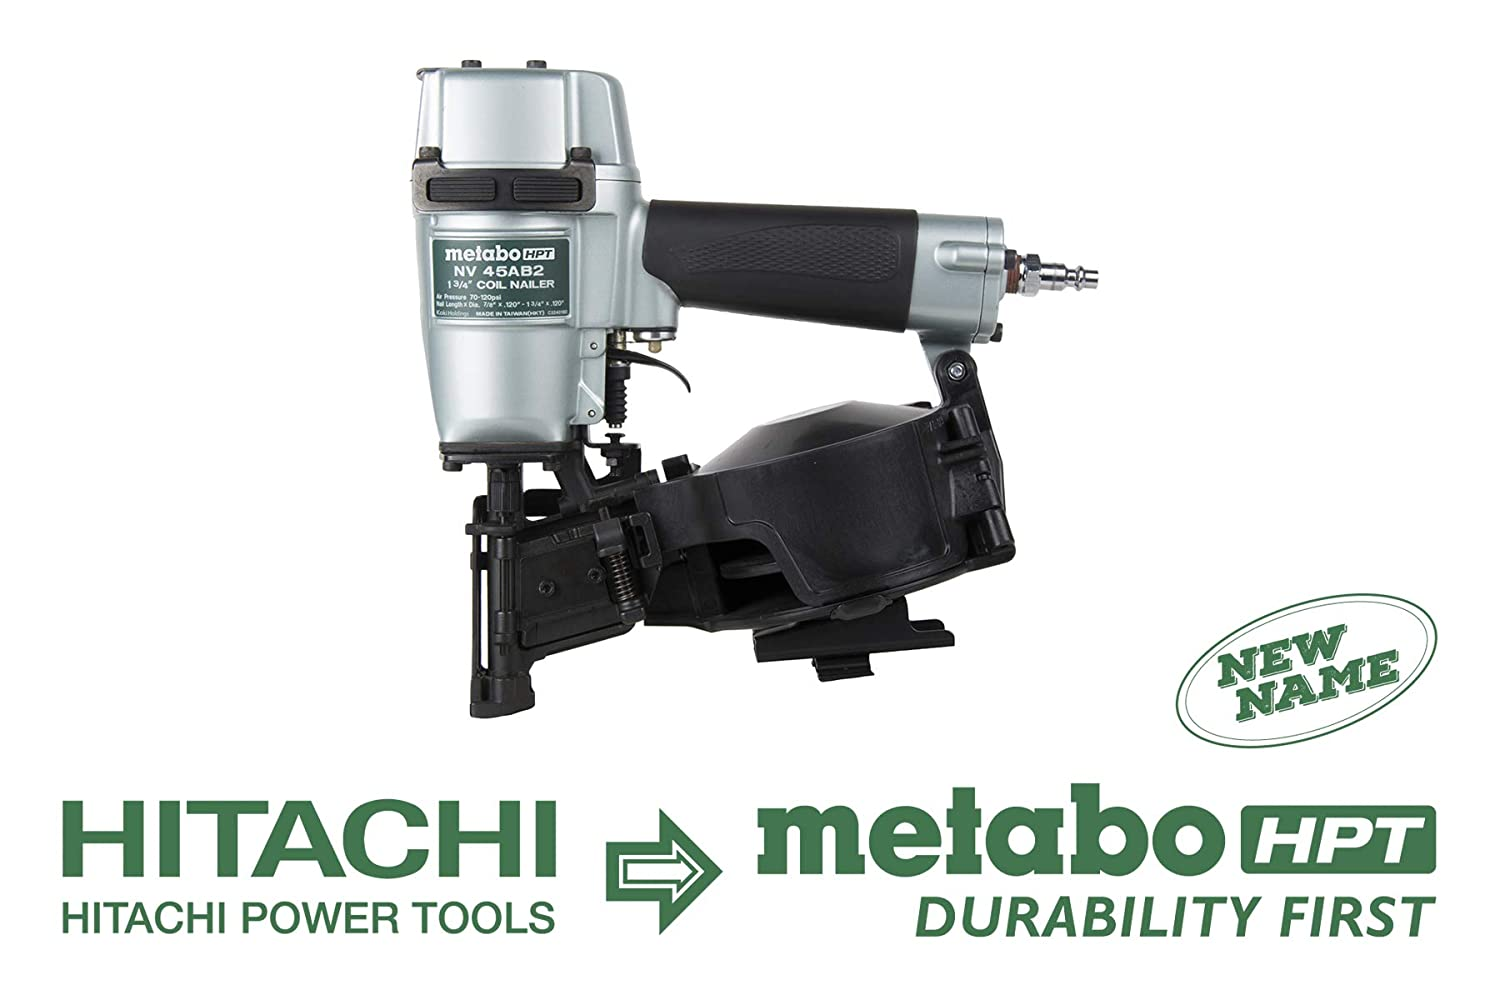 Metabo HPT NV45AB2 Roofing Nailer, 7 8-Inch up to 1-3 4-Inch Coil Nails, 16 Degree, Side Load, Nail Capacity – 120, Lightweight and Well-Balanced, 5 Year Warranty